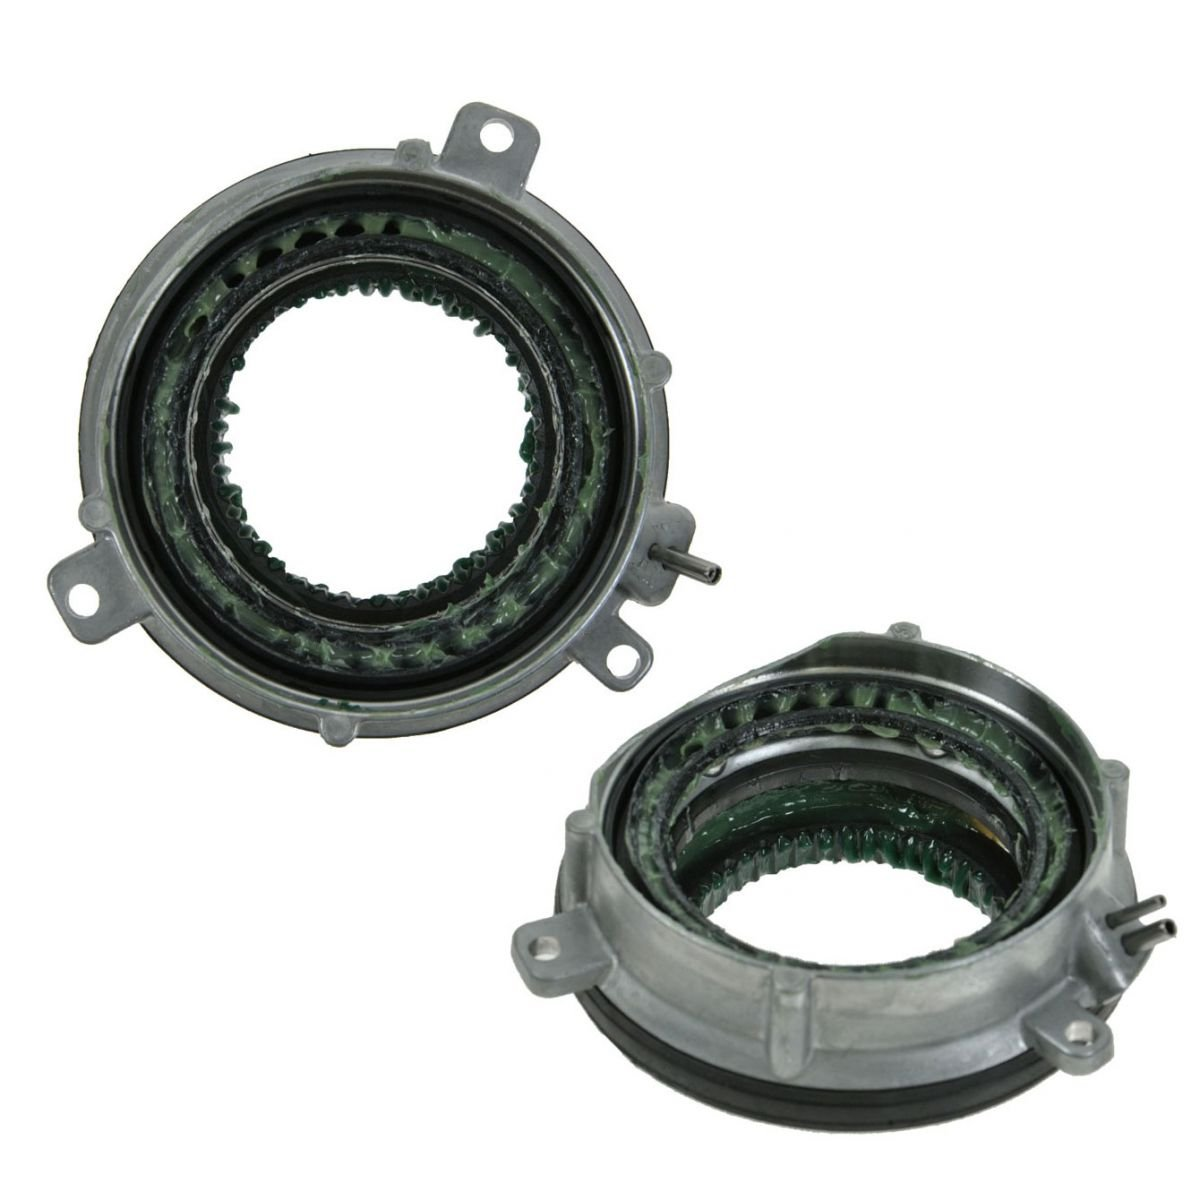 Auto-Locking Hub 4 Wheel Drive Actuator Pair for Ford F150 Expedition 4WD 4x4 TRQ